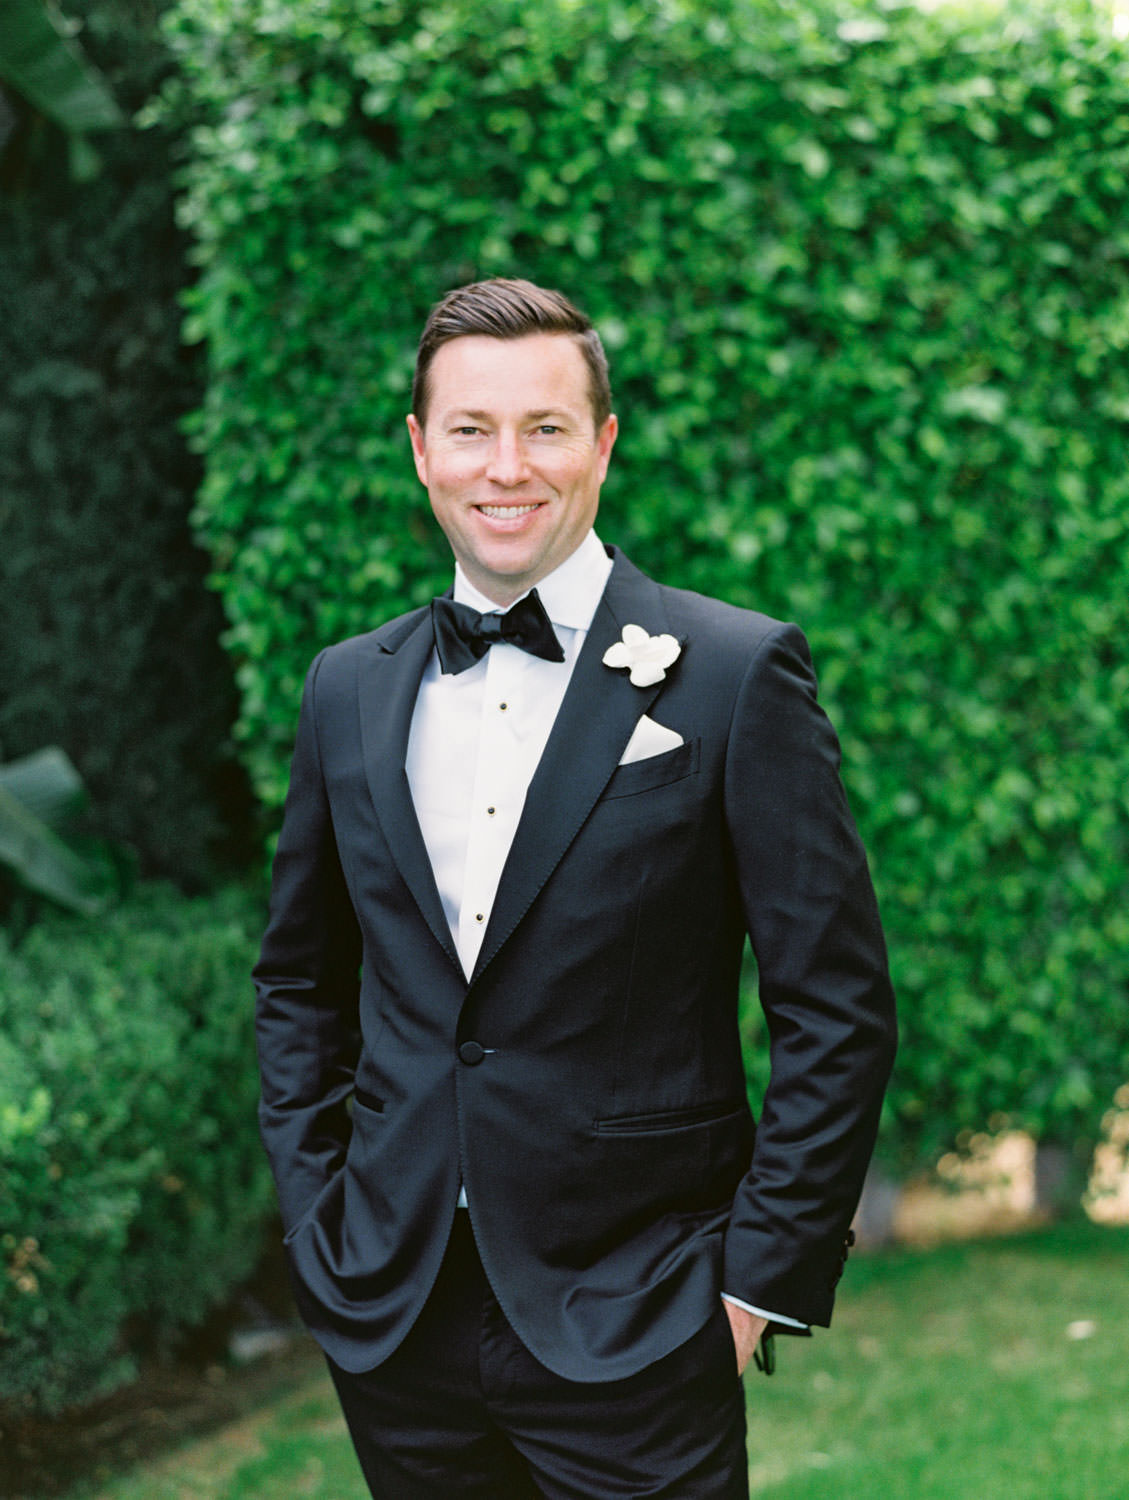 Groom in classic black tuxedo with single white rose for boutonniere in front of green hedges. Miramonte Resort wedding. Film photography by Cavin Elizabeth.